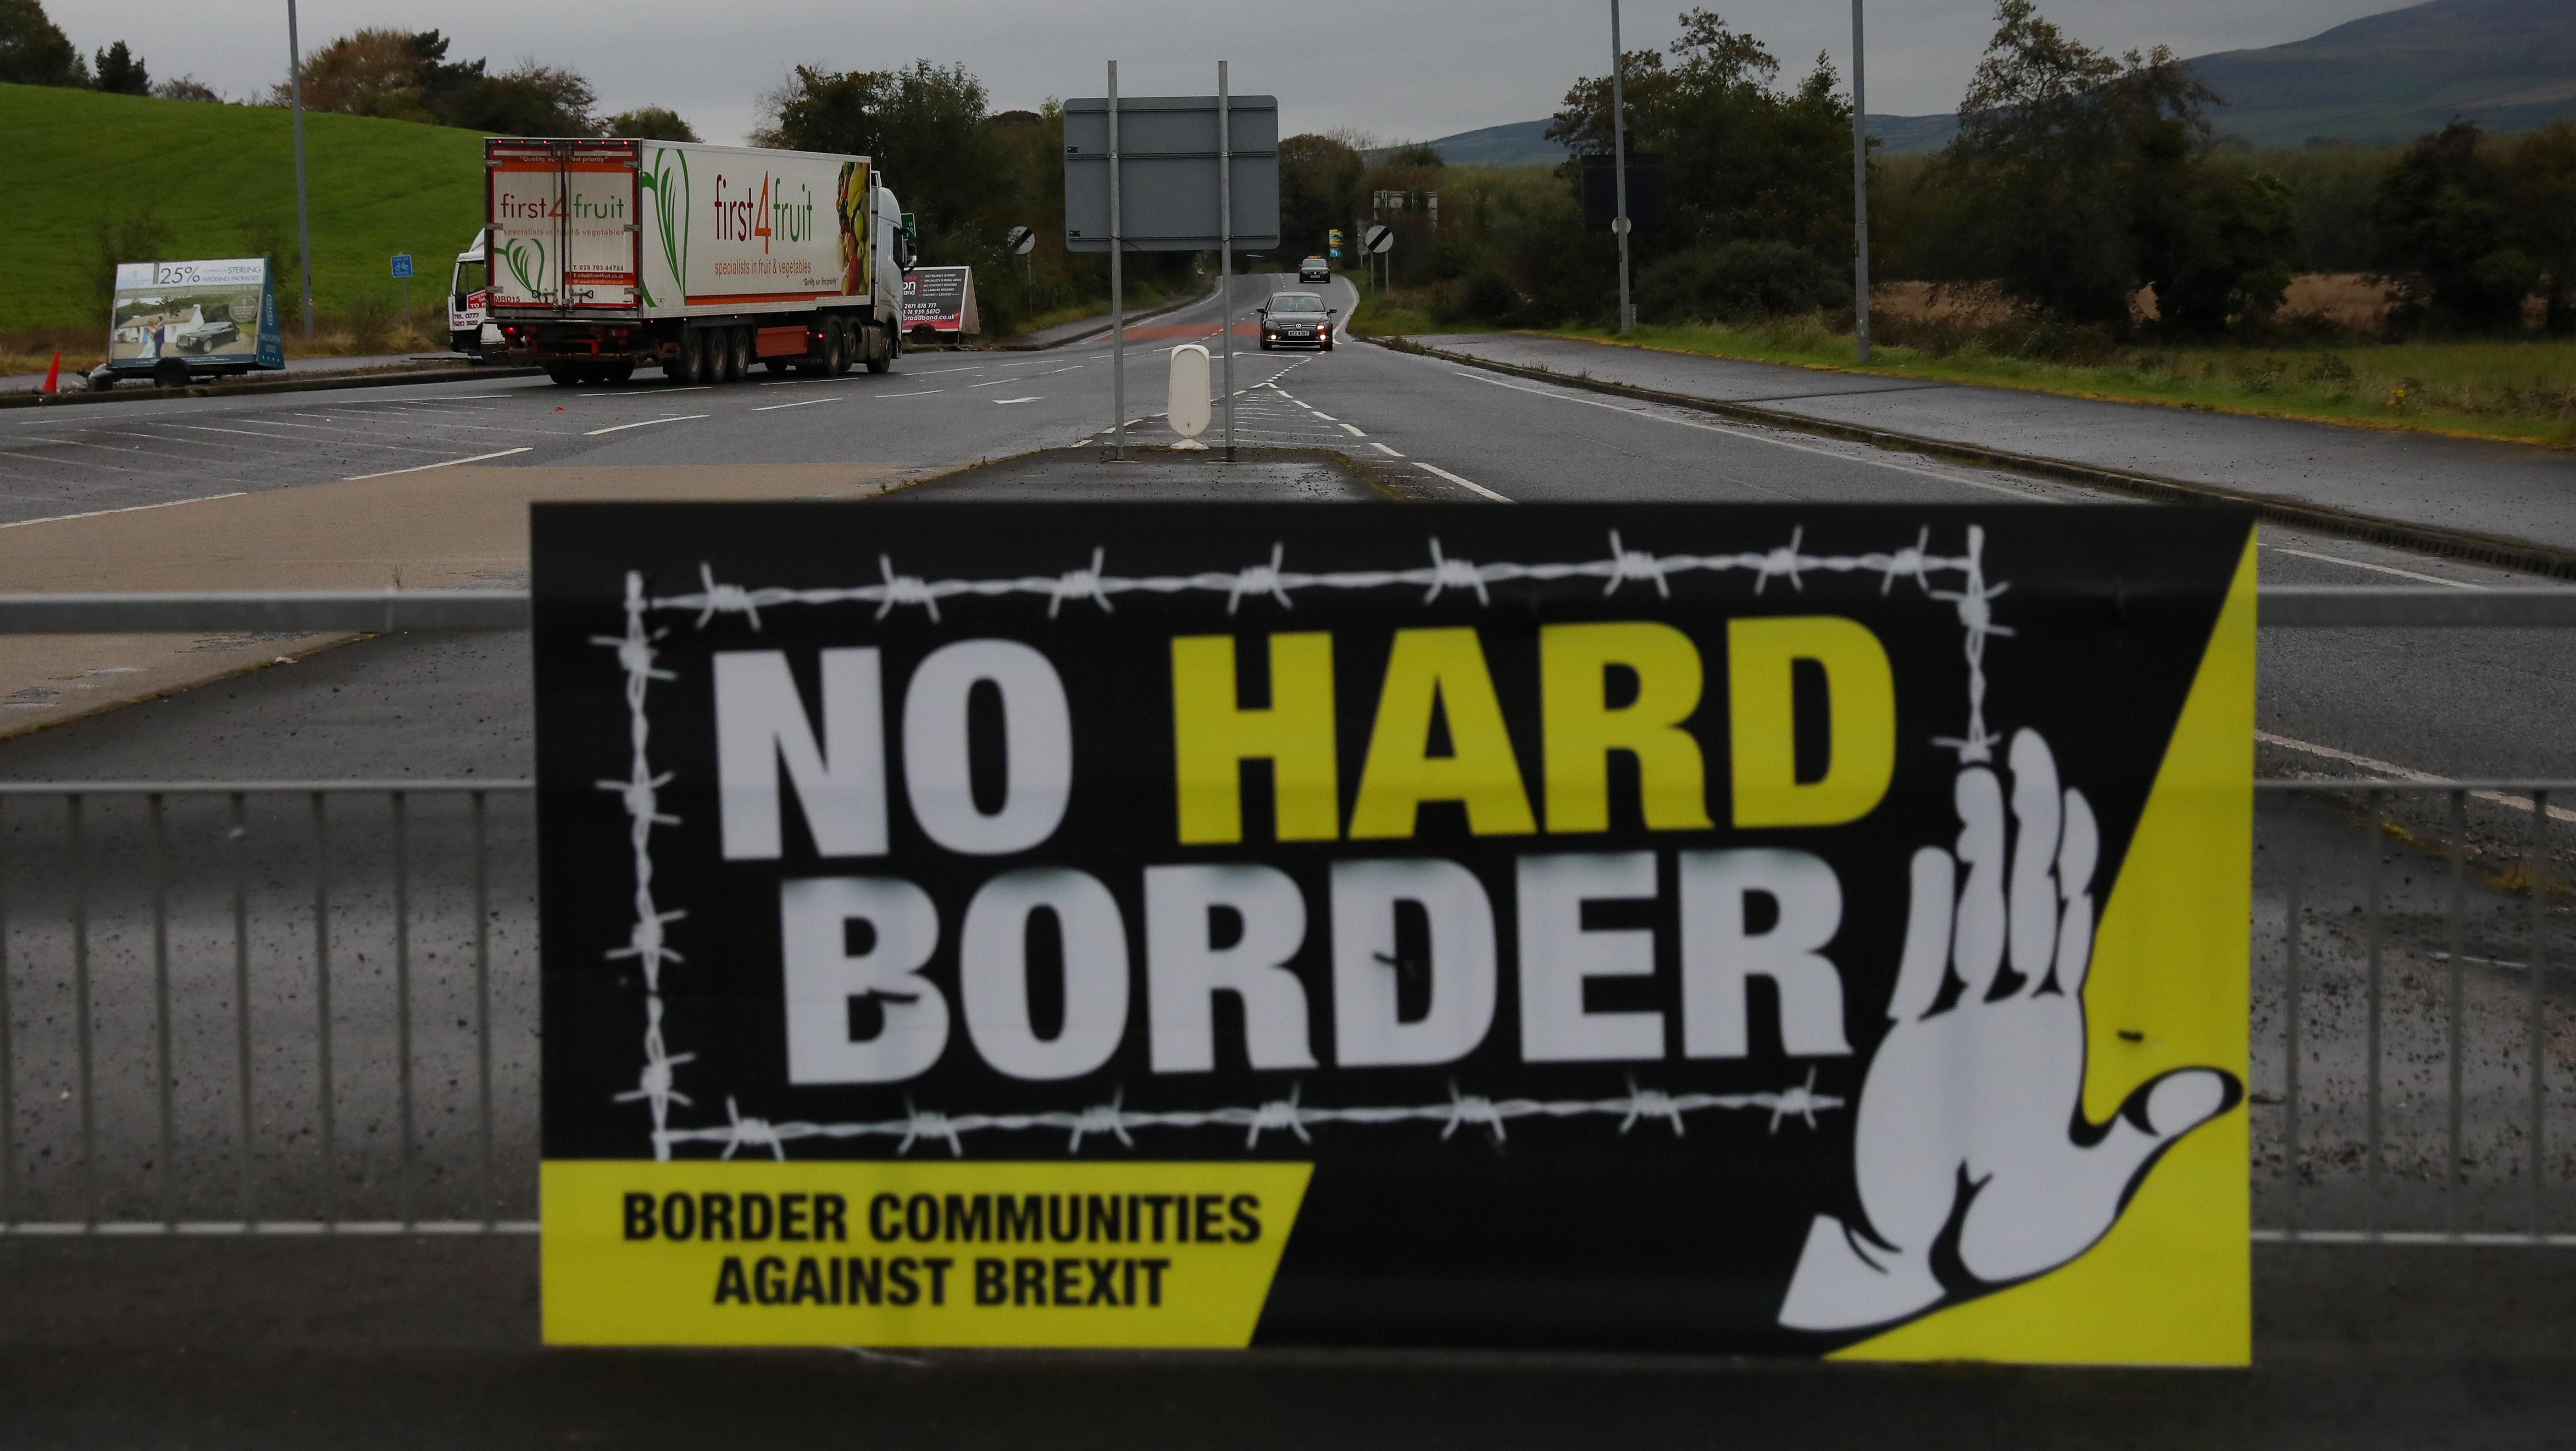 A lorry drives past a 'No Hard Border' poster near Londonderry, Northern Ireland October 15, 2019